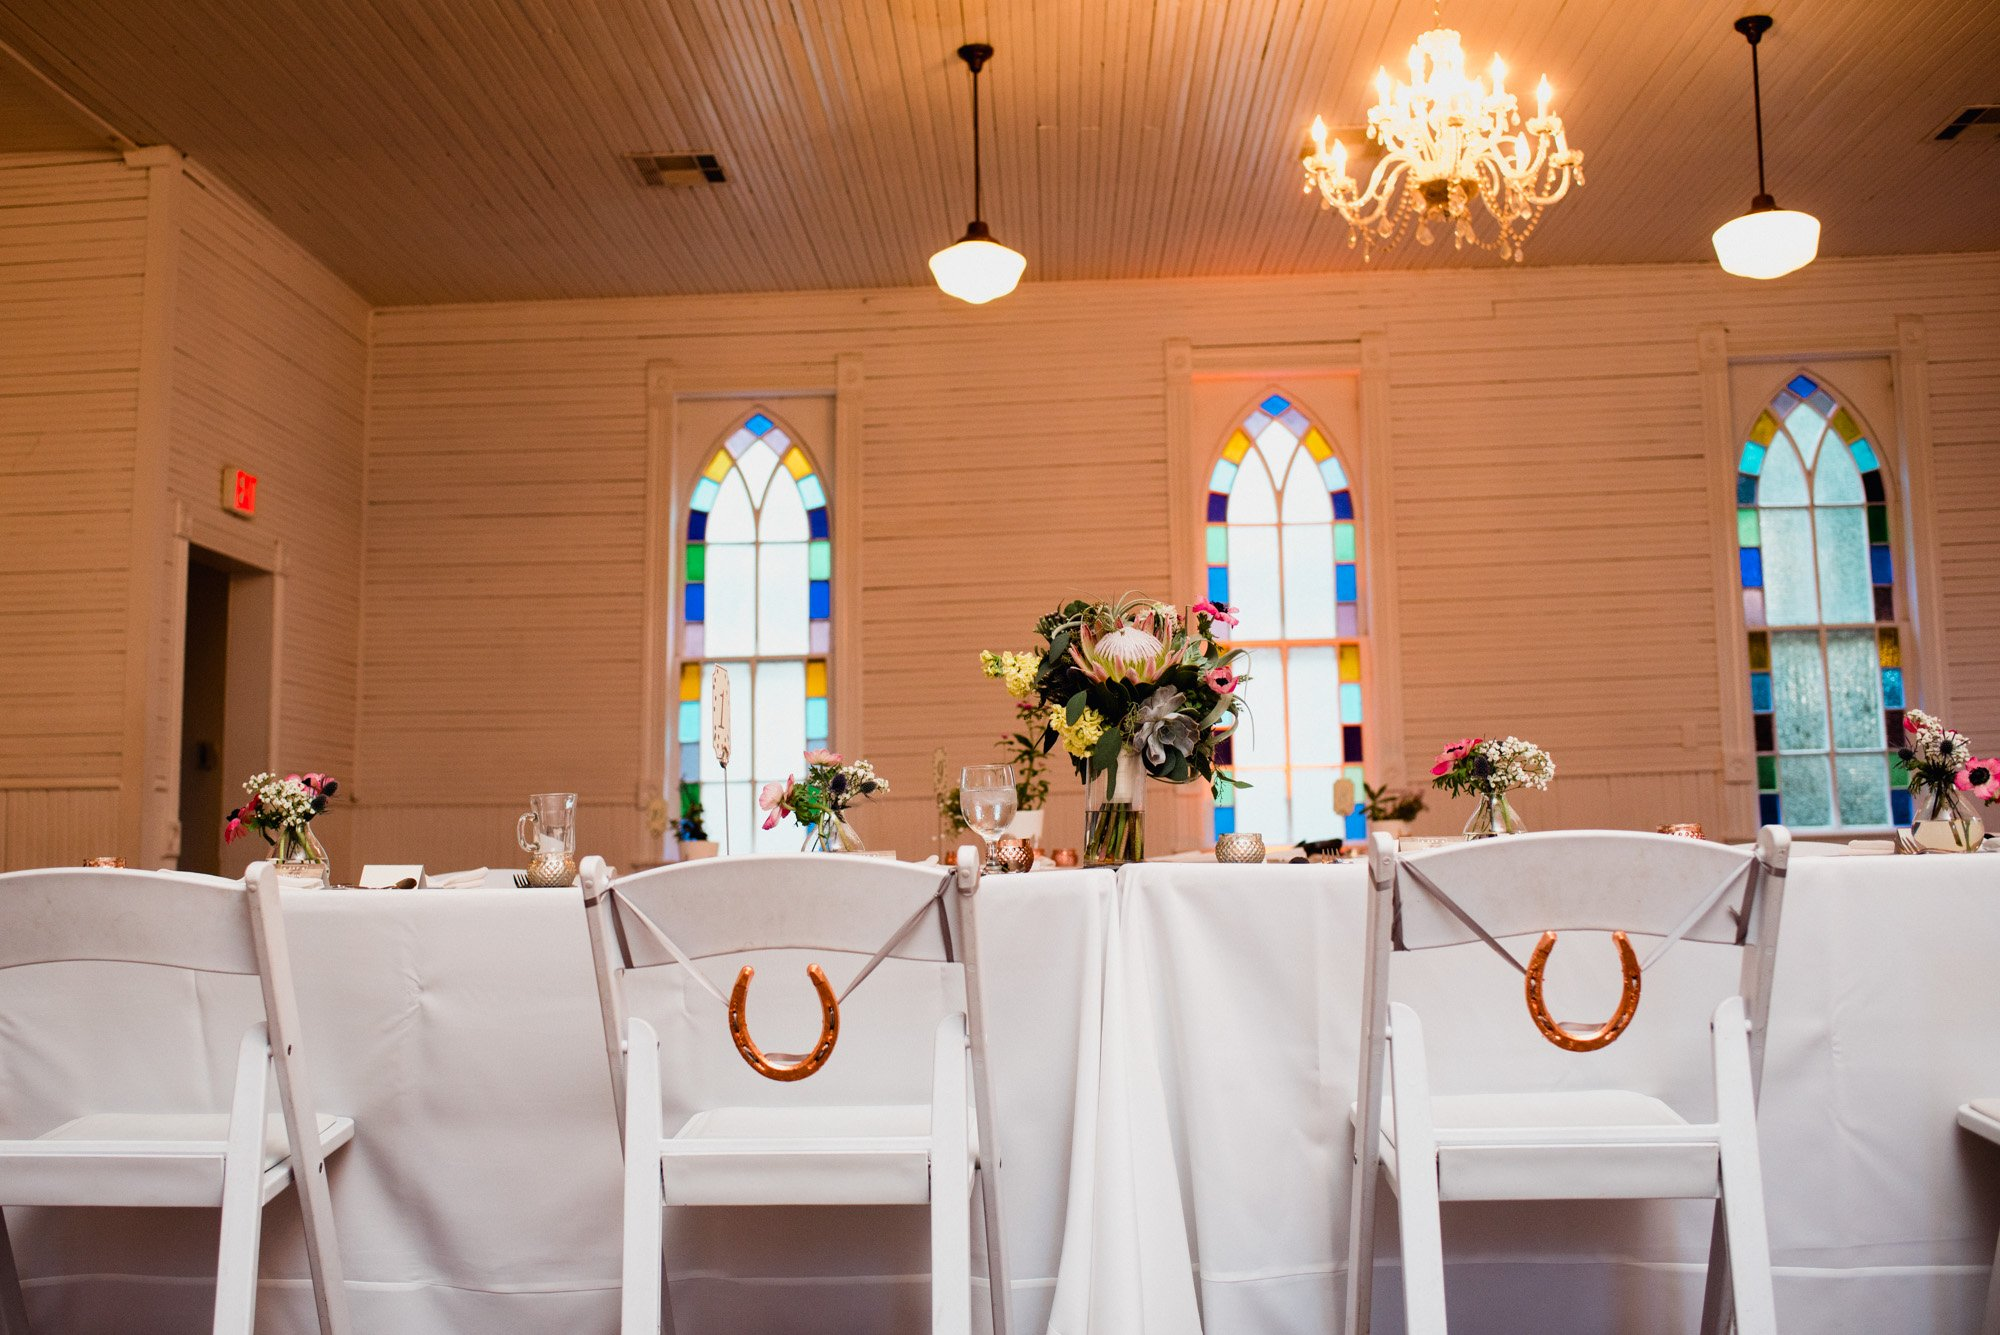 lucky horseshoes for the bride and groom at a mercury hall wedding reception